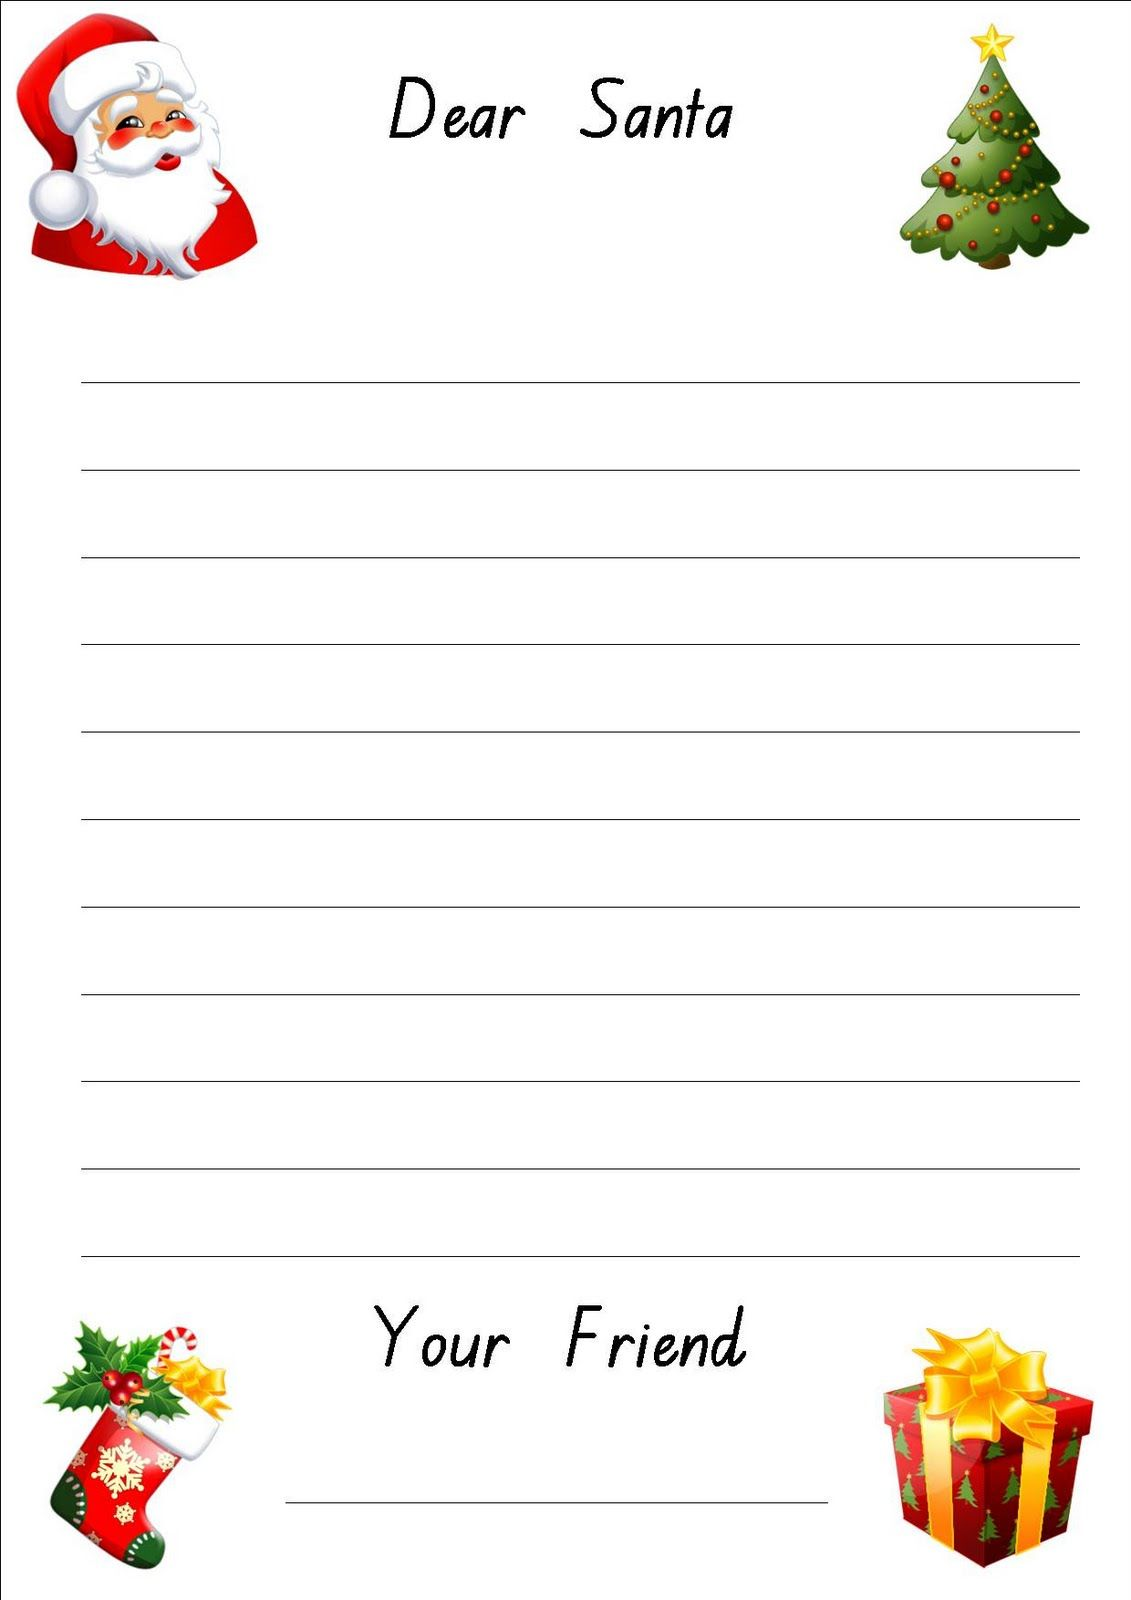 Lined christmas paper for letters do your kids write letters to lined christmas paper for letters do your kids write letters to santa every year jeuxipadfo Images